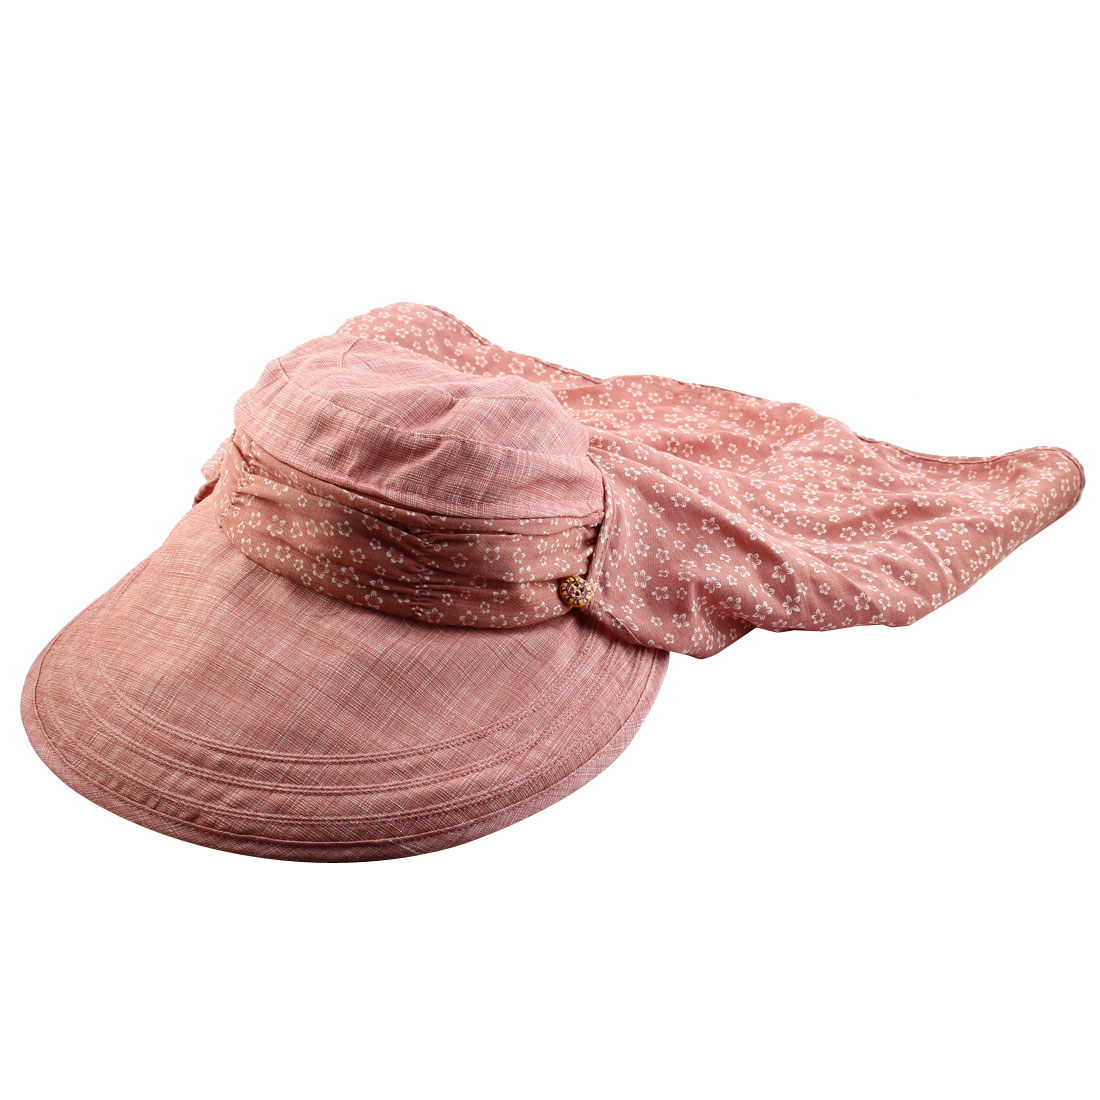 Lady Flower Printed Neck Protection Wide Brim Summer Floppy Cap Sun Visor Hat Coral Pink